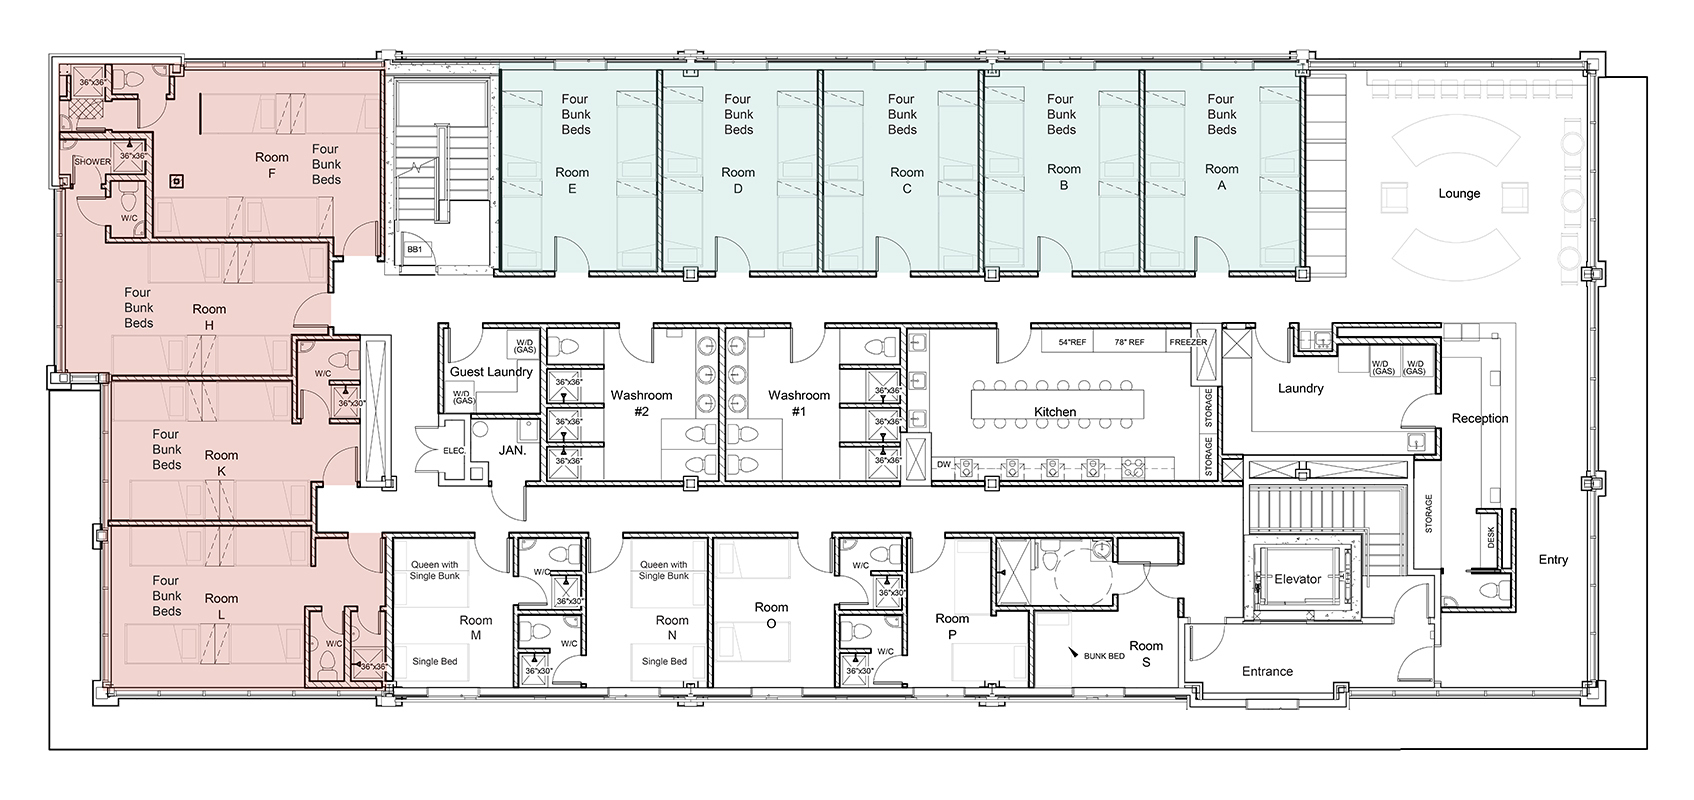 Canmore Downtown Hostel Floor Plan - Dorm rooms